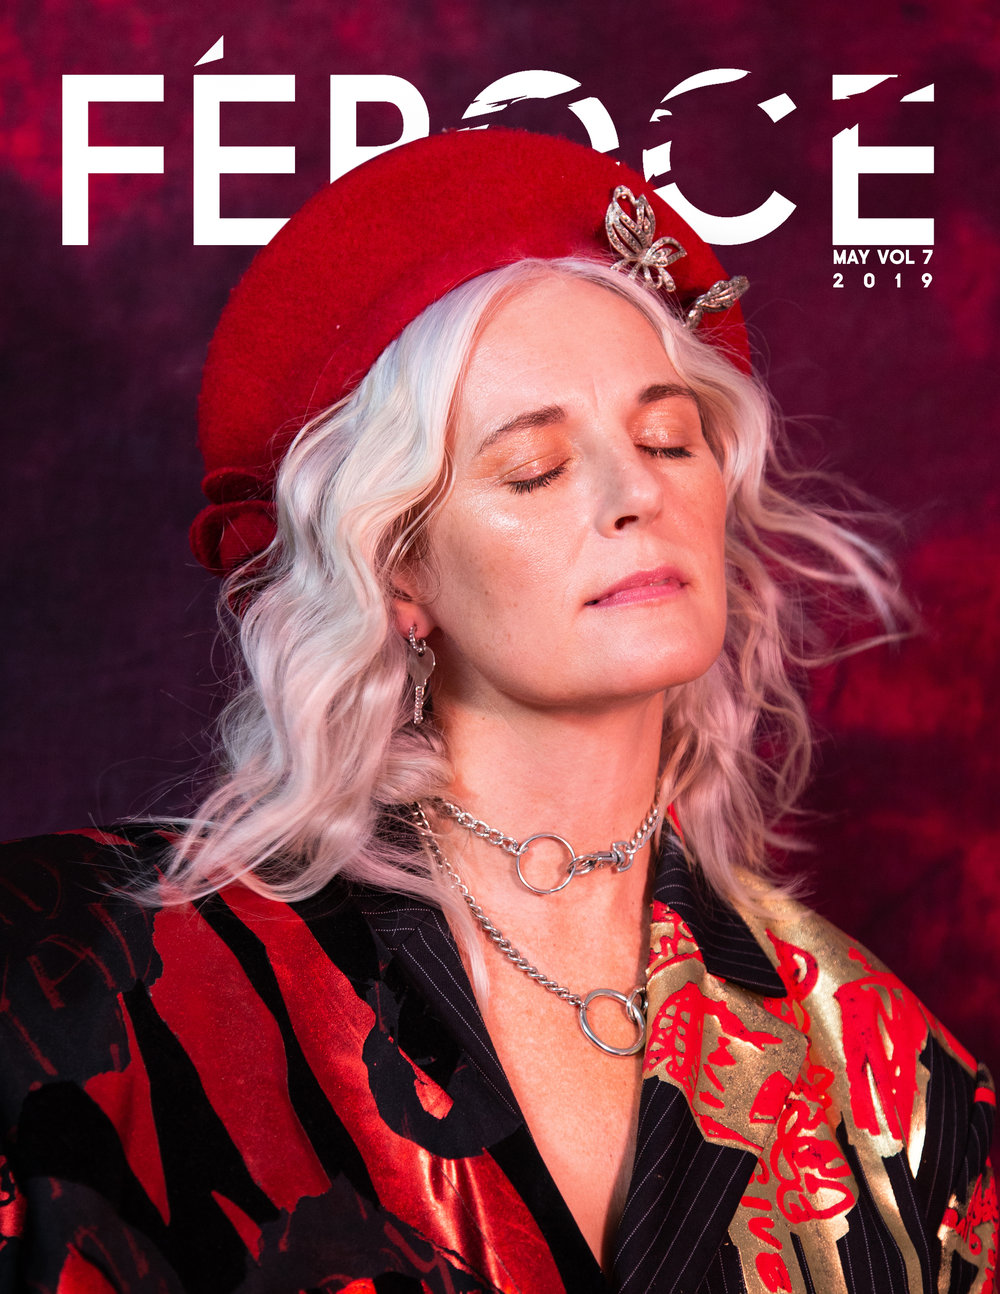 MAY VOL 7 2019 — Féroce Magazine